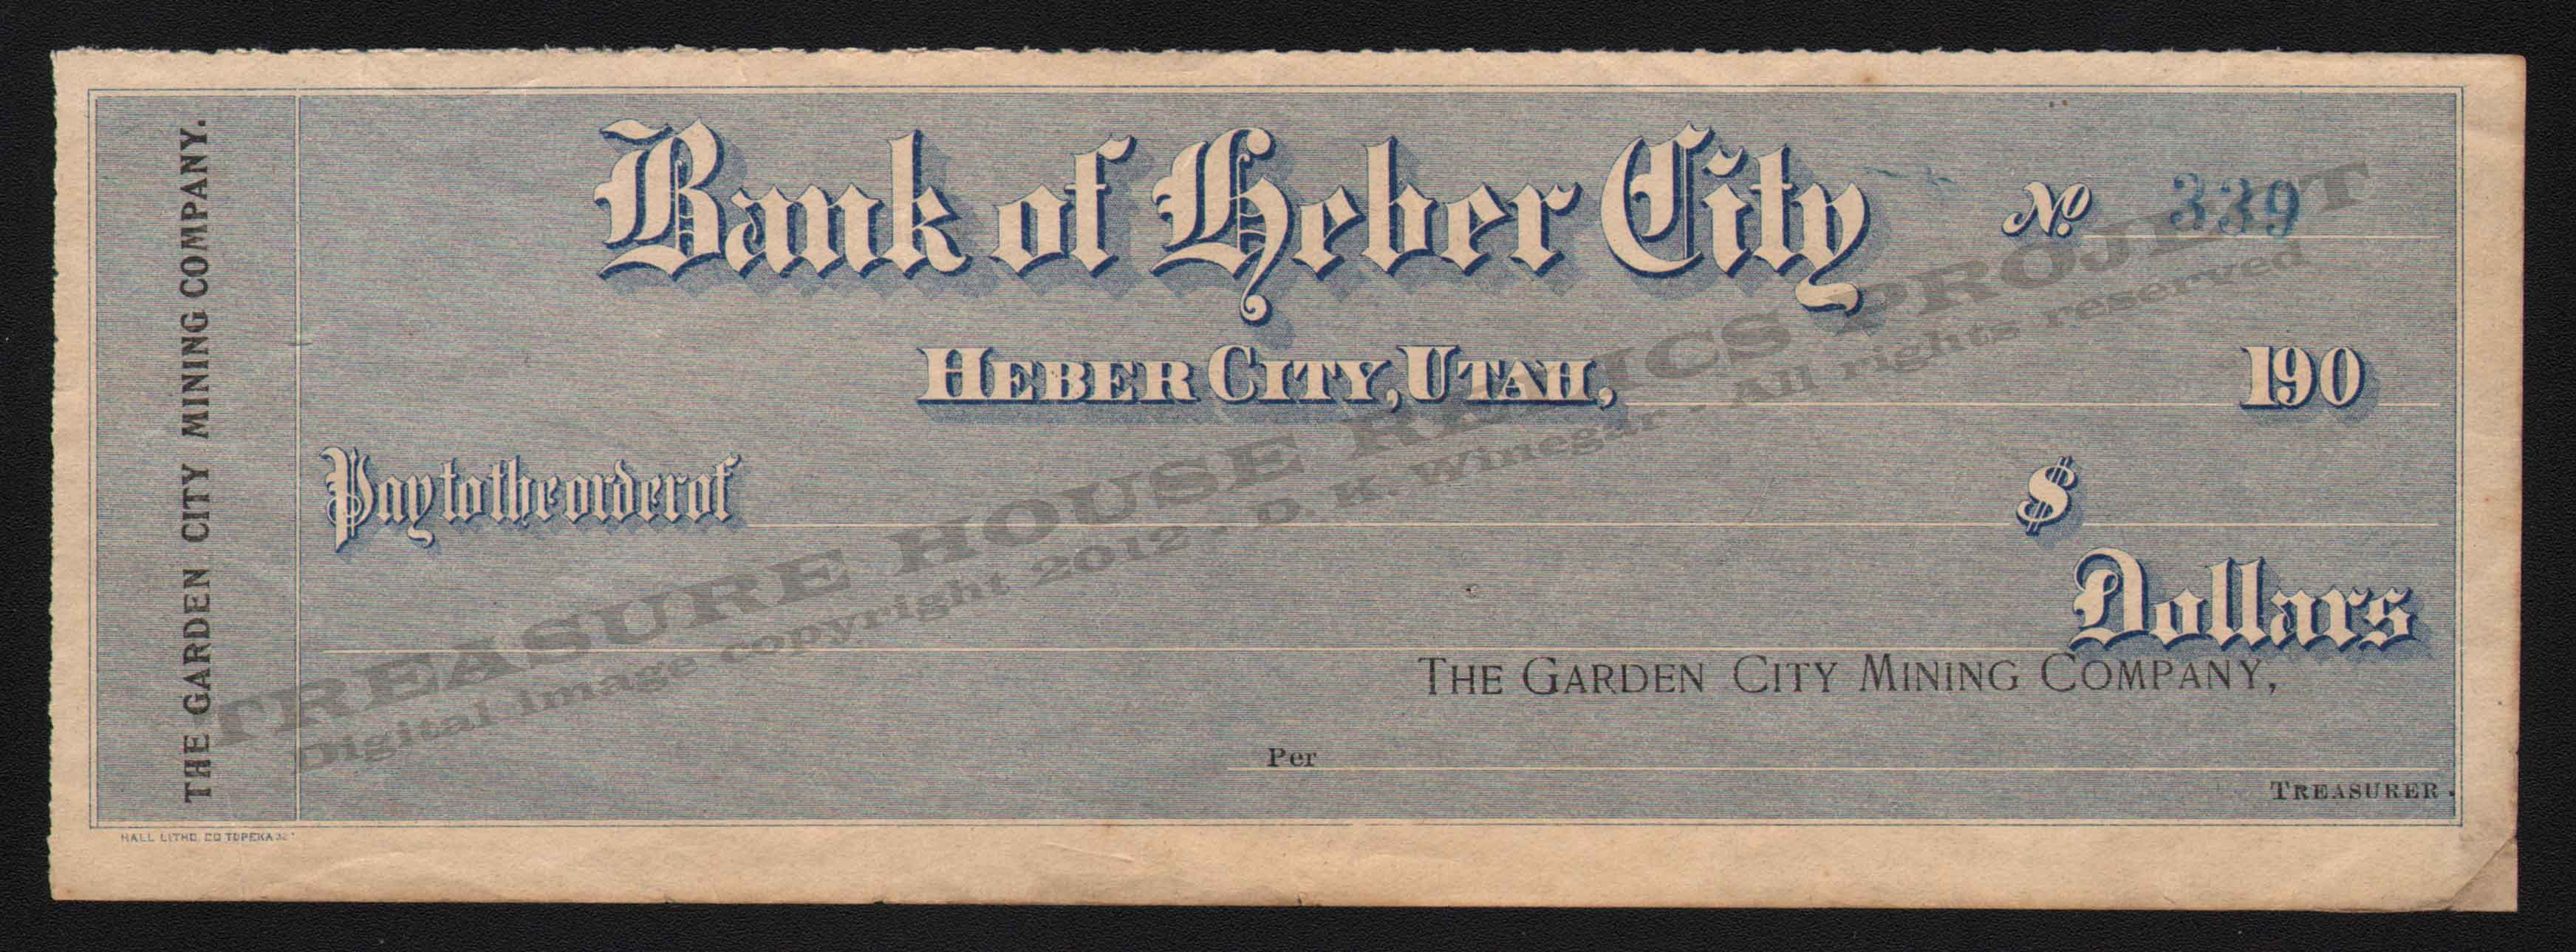 LETTERHEAD/CHECK_GARDEN_CITY_MINING_COMPANY_BANK_OF_HEBER_CITY_339_NI_400_CROP_EMBOSS.jpg